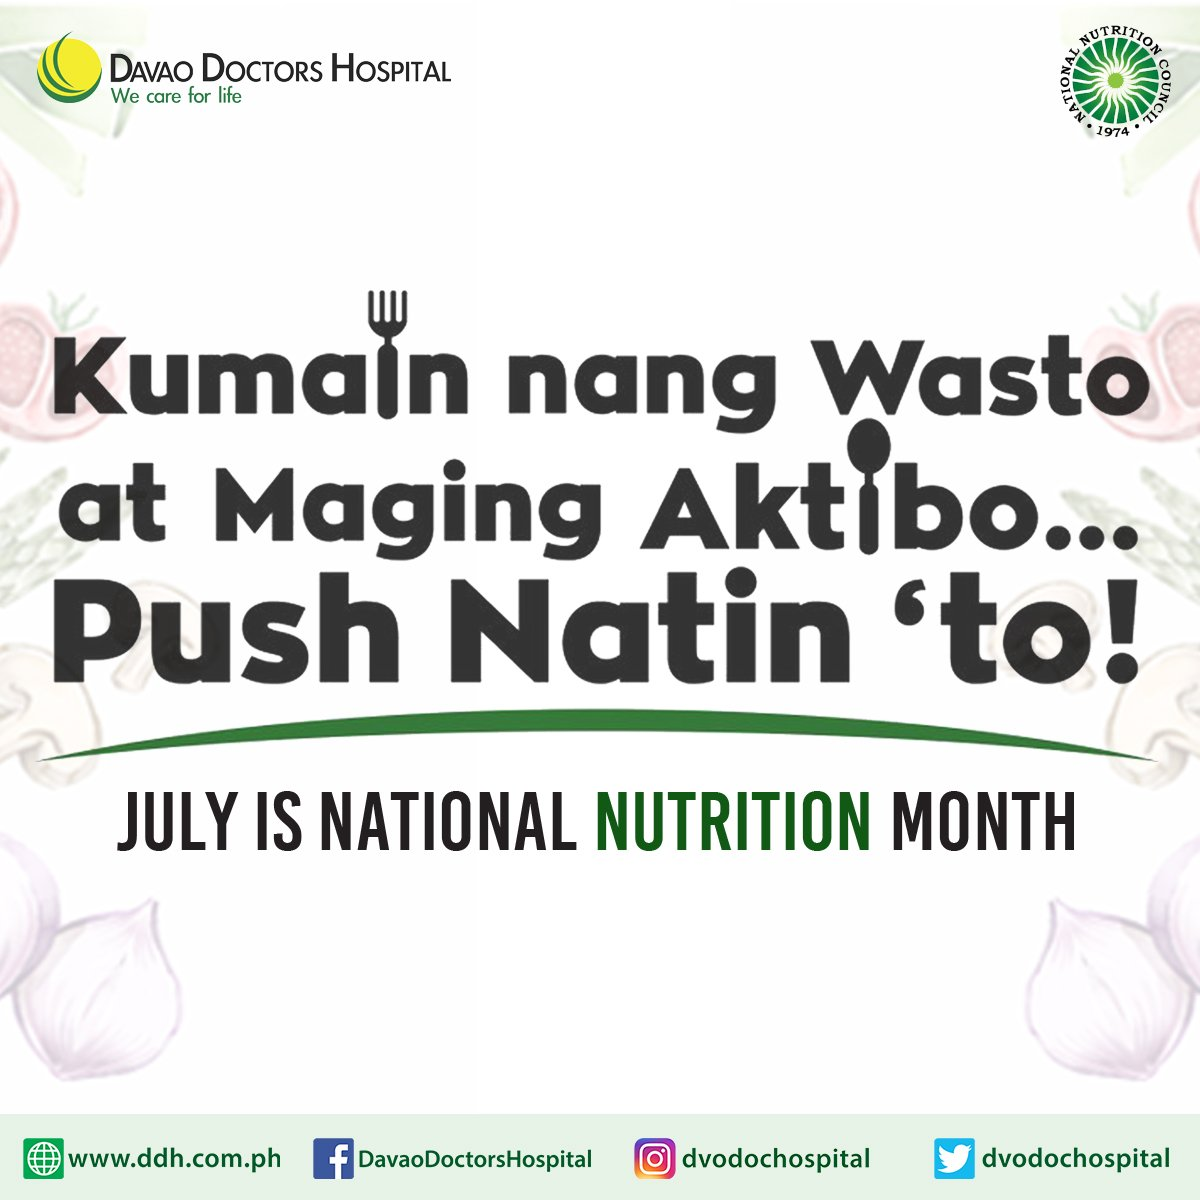 ddhfridayhealthtidbits kumain ng wasto at maging aktibo push natin to to know more https mayocl in 2ioxfzp ddhcares nutritionmonth